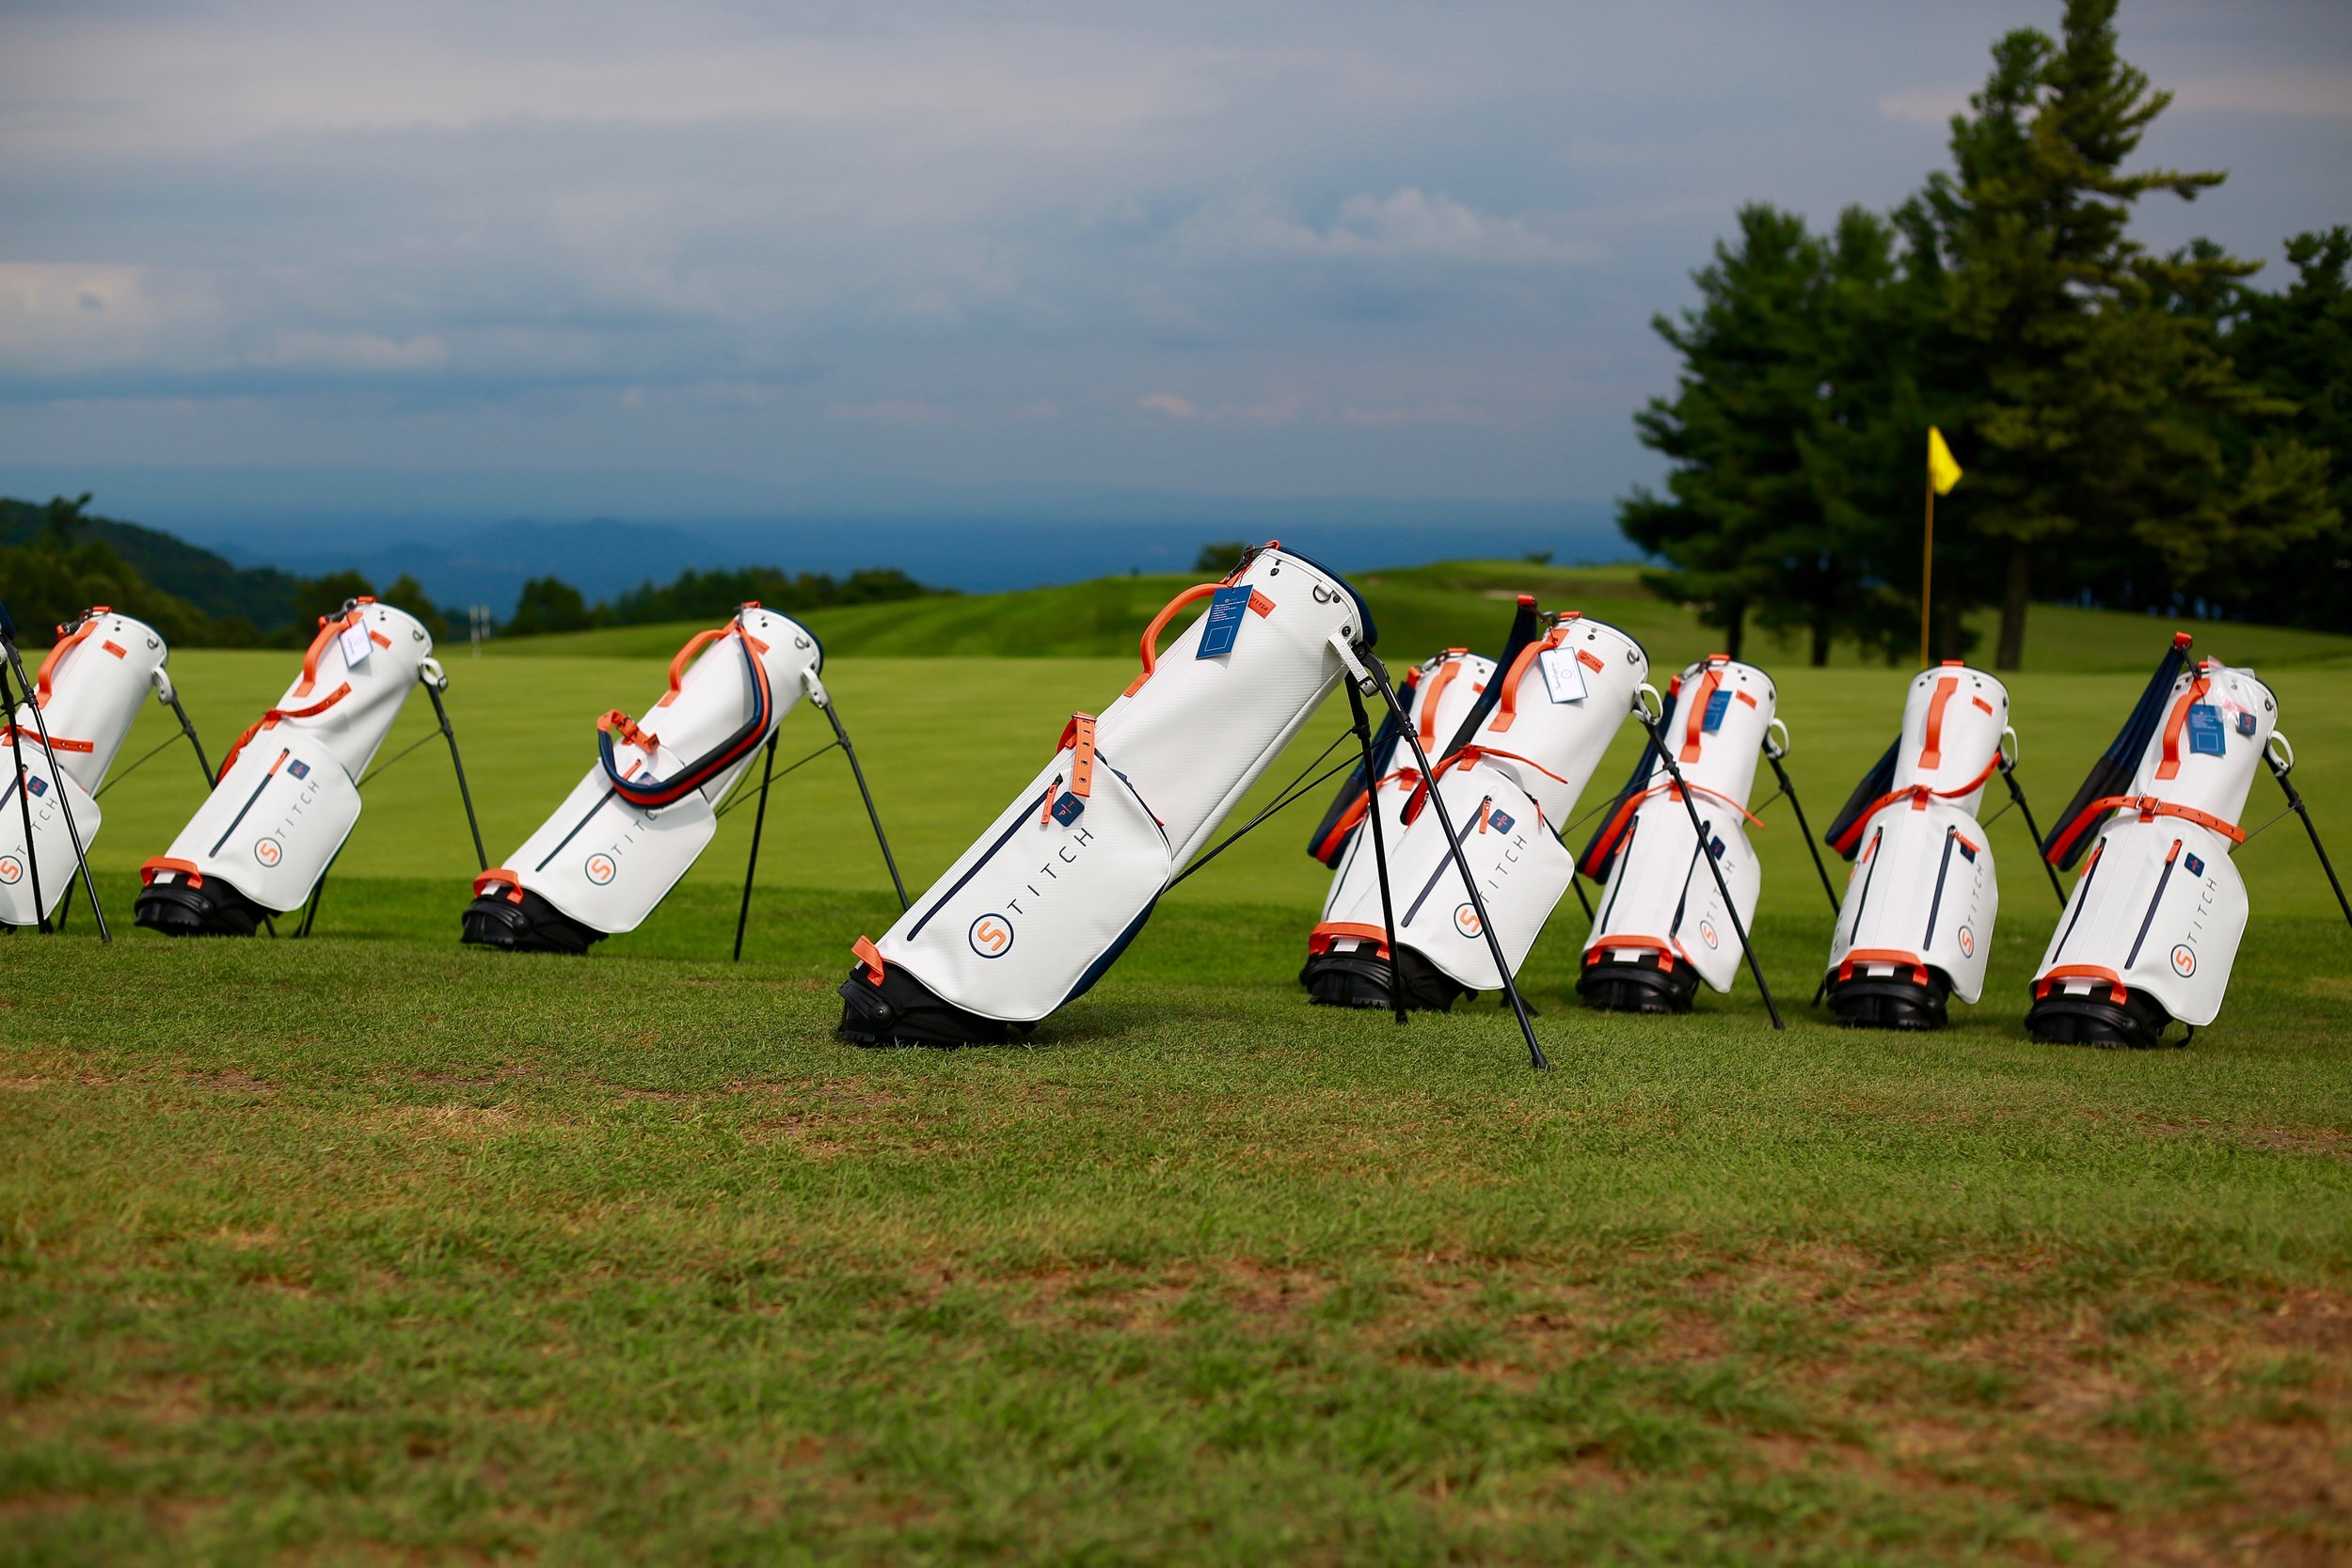 An array of Stitch bags lined up at Roaring Gap Golf Club in late August for a company outing.